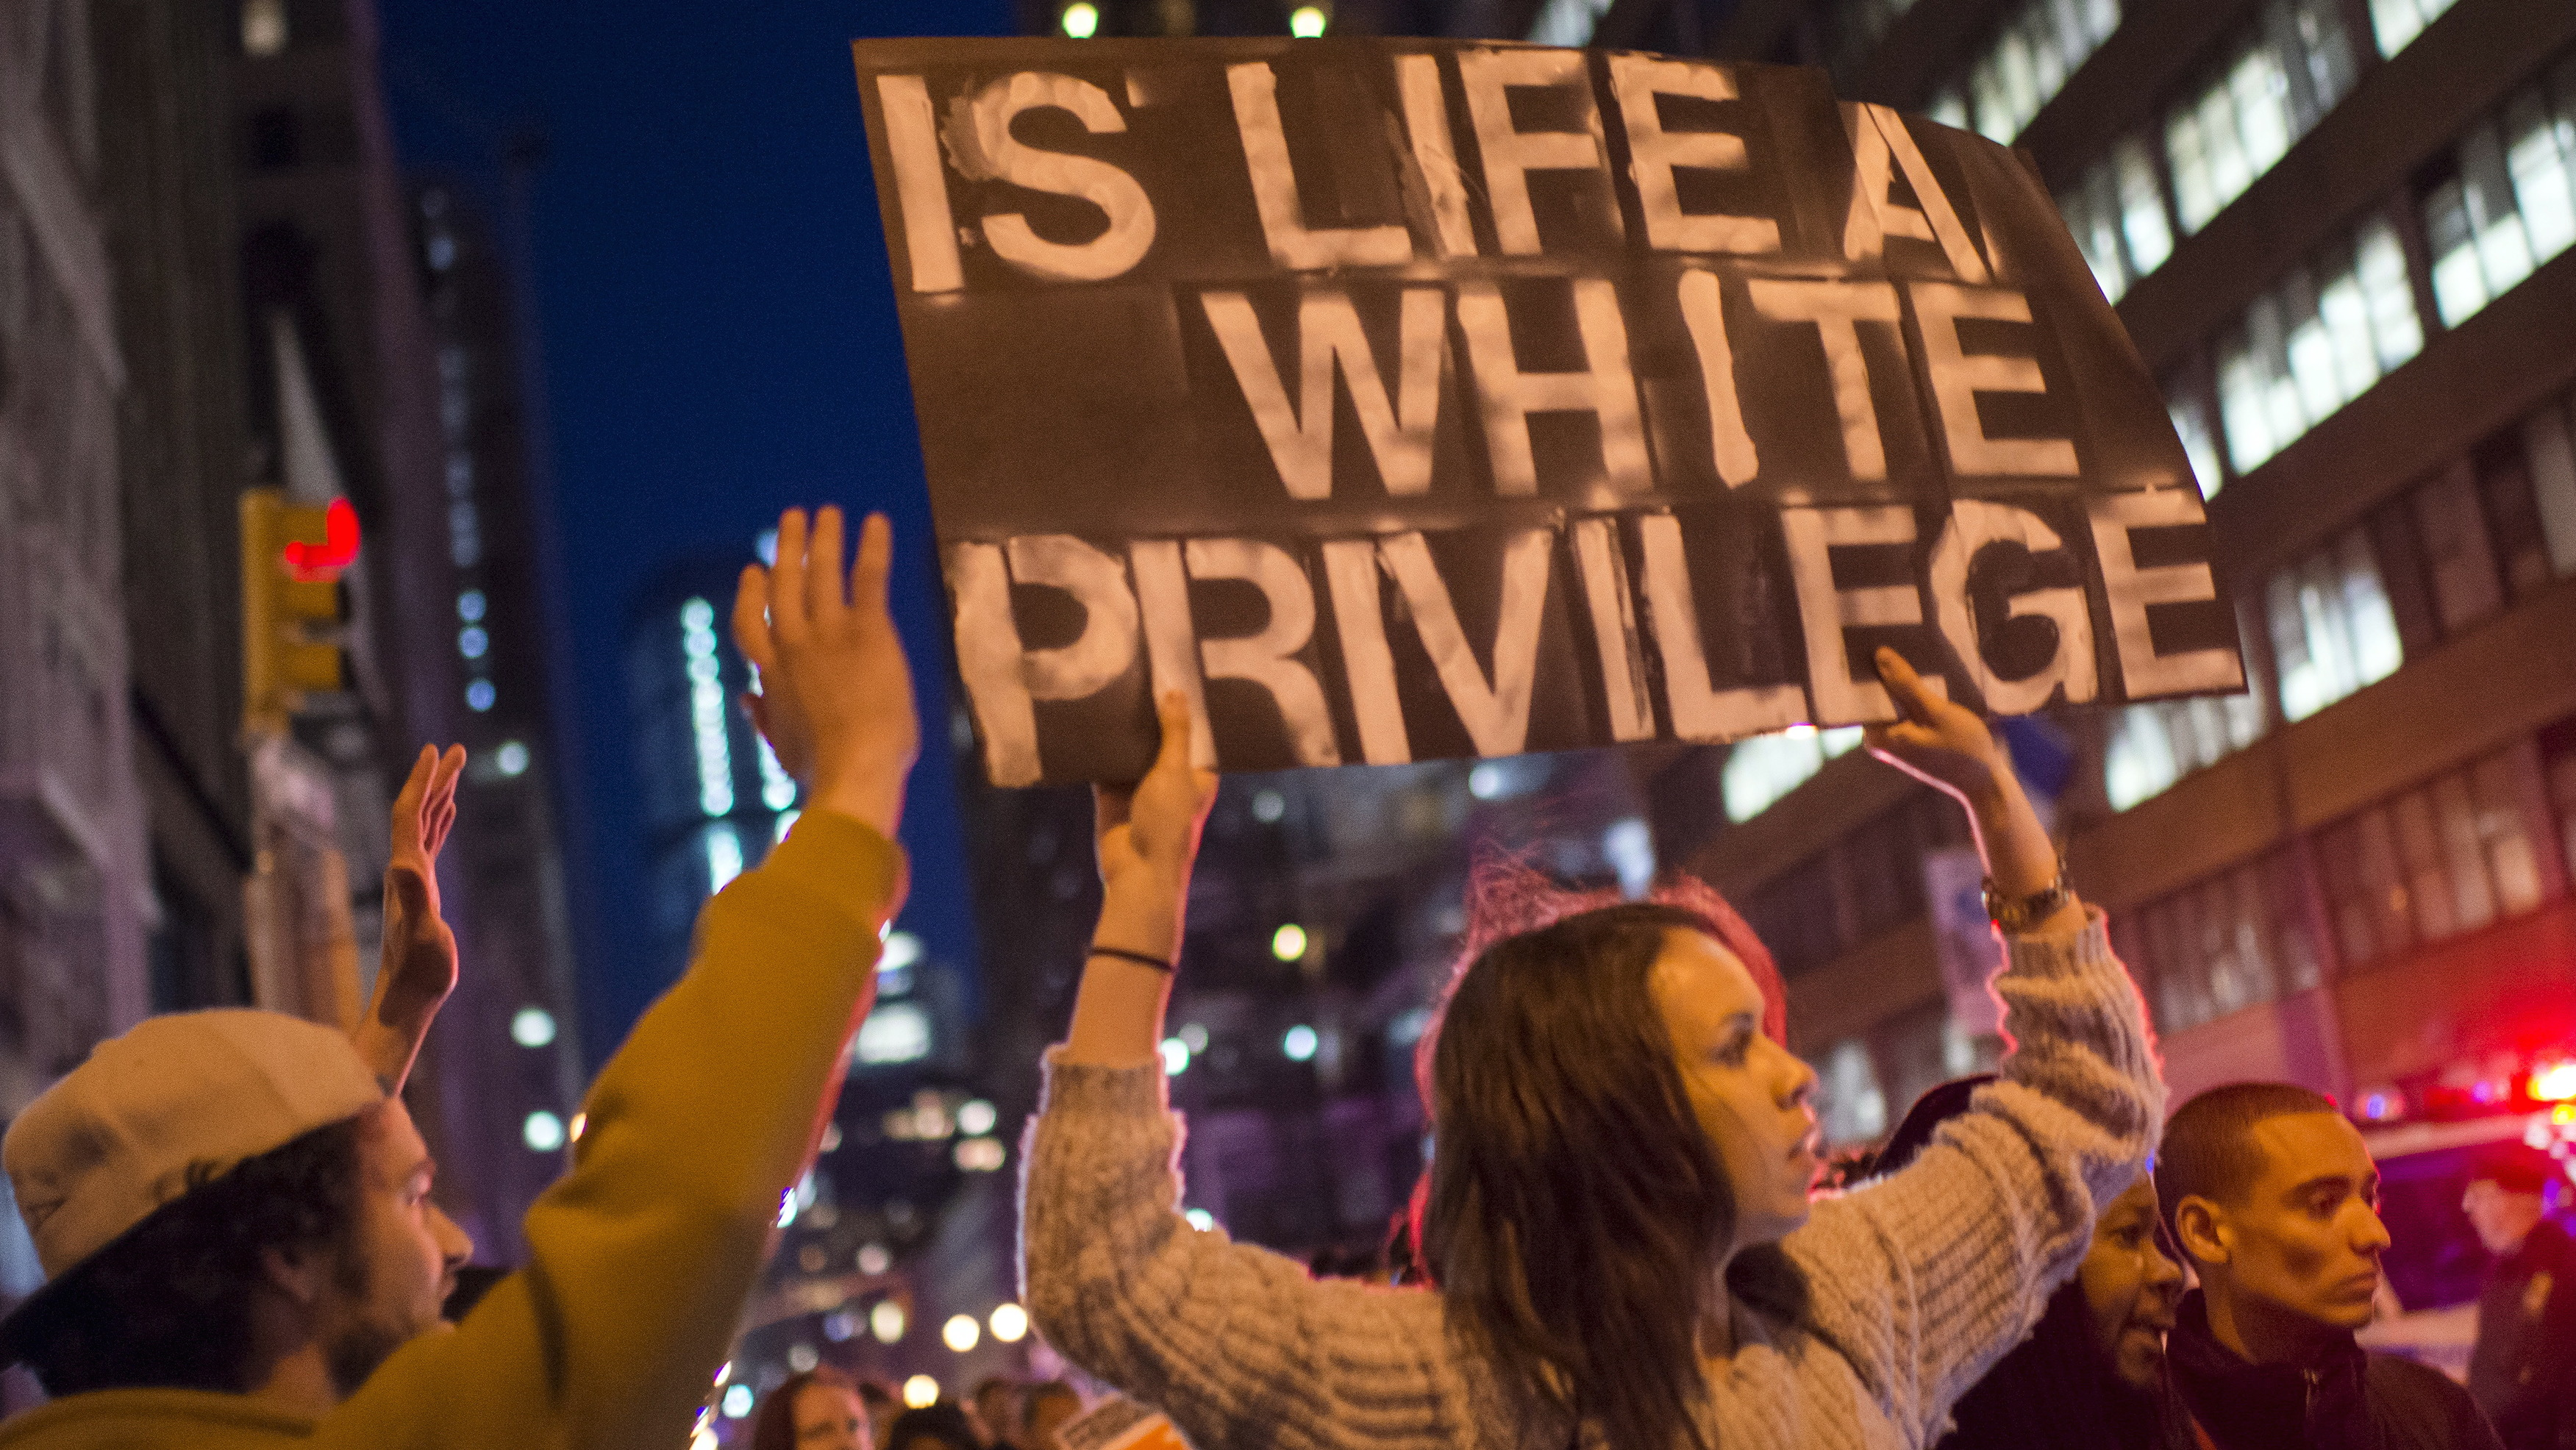 Demonstrators calling for social, economic and racial justice march in New York